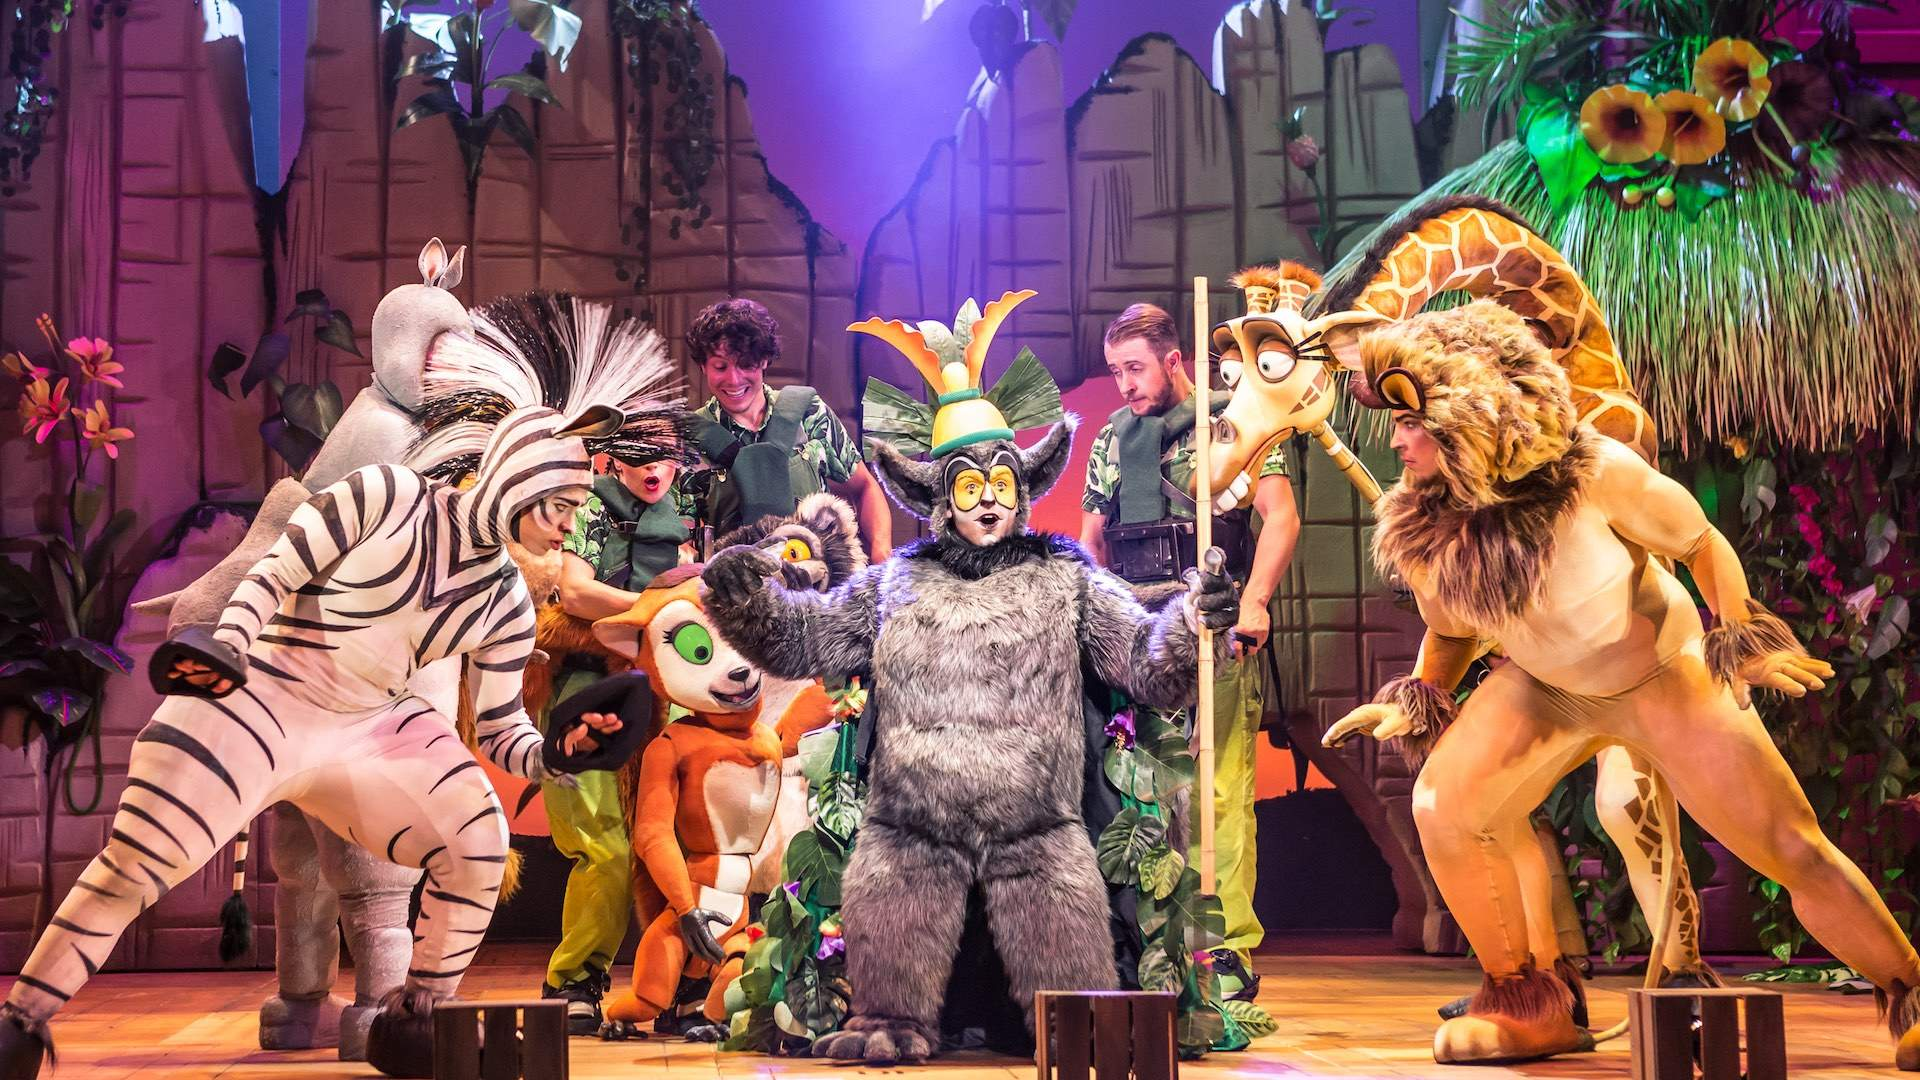 'Madagascar the Musical' Will Sing and Dance Its Way Down Under From August